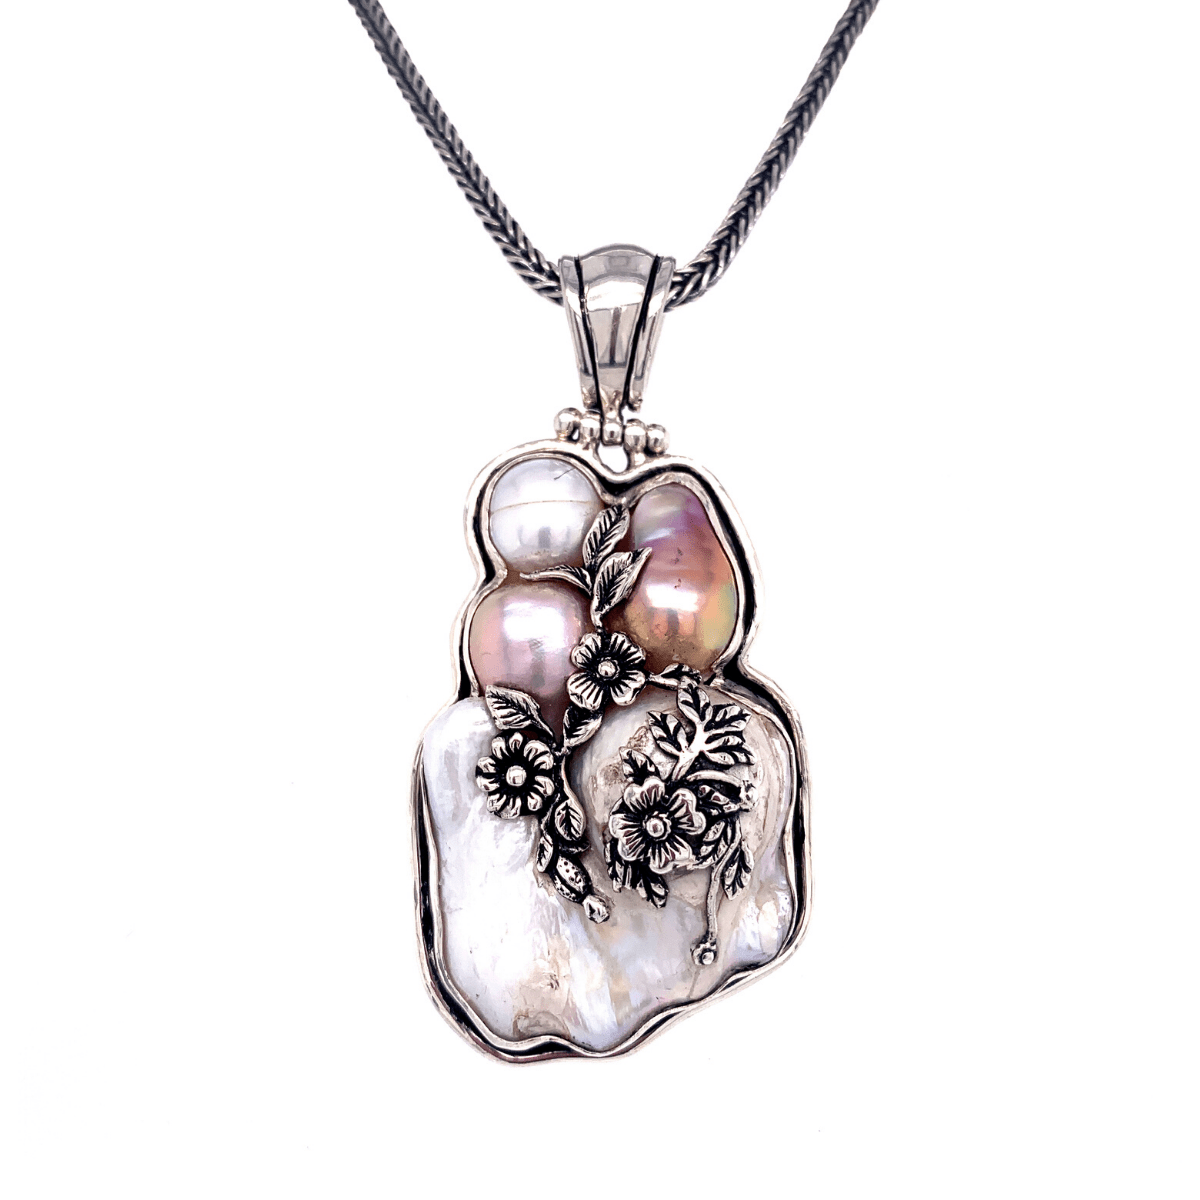 Baroque Freshwater Pearls & Sterling Silver Cluster Pendant - Qinti - The Peruvian Shop